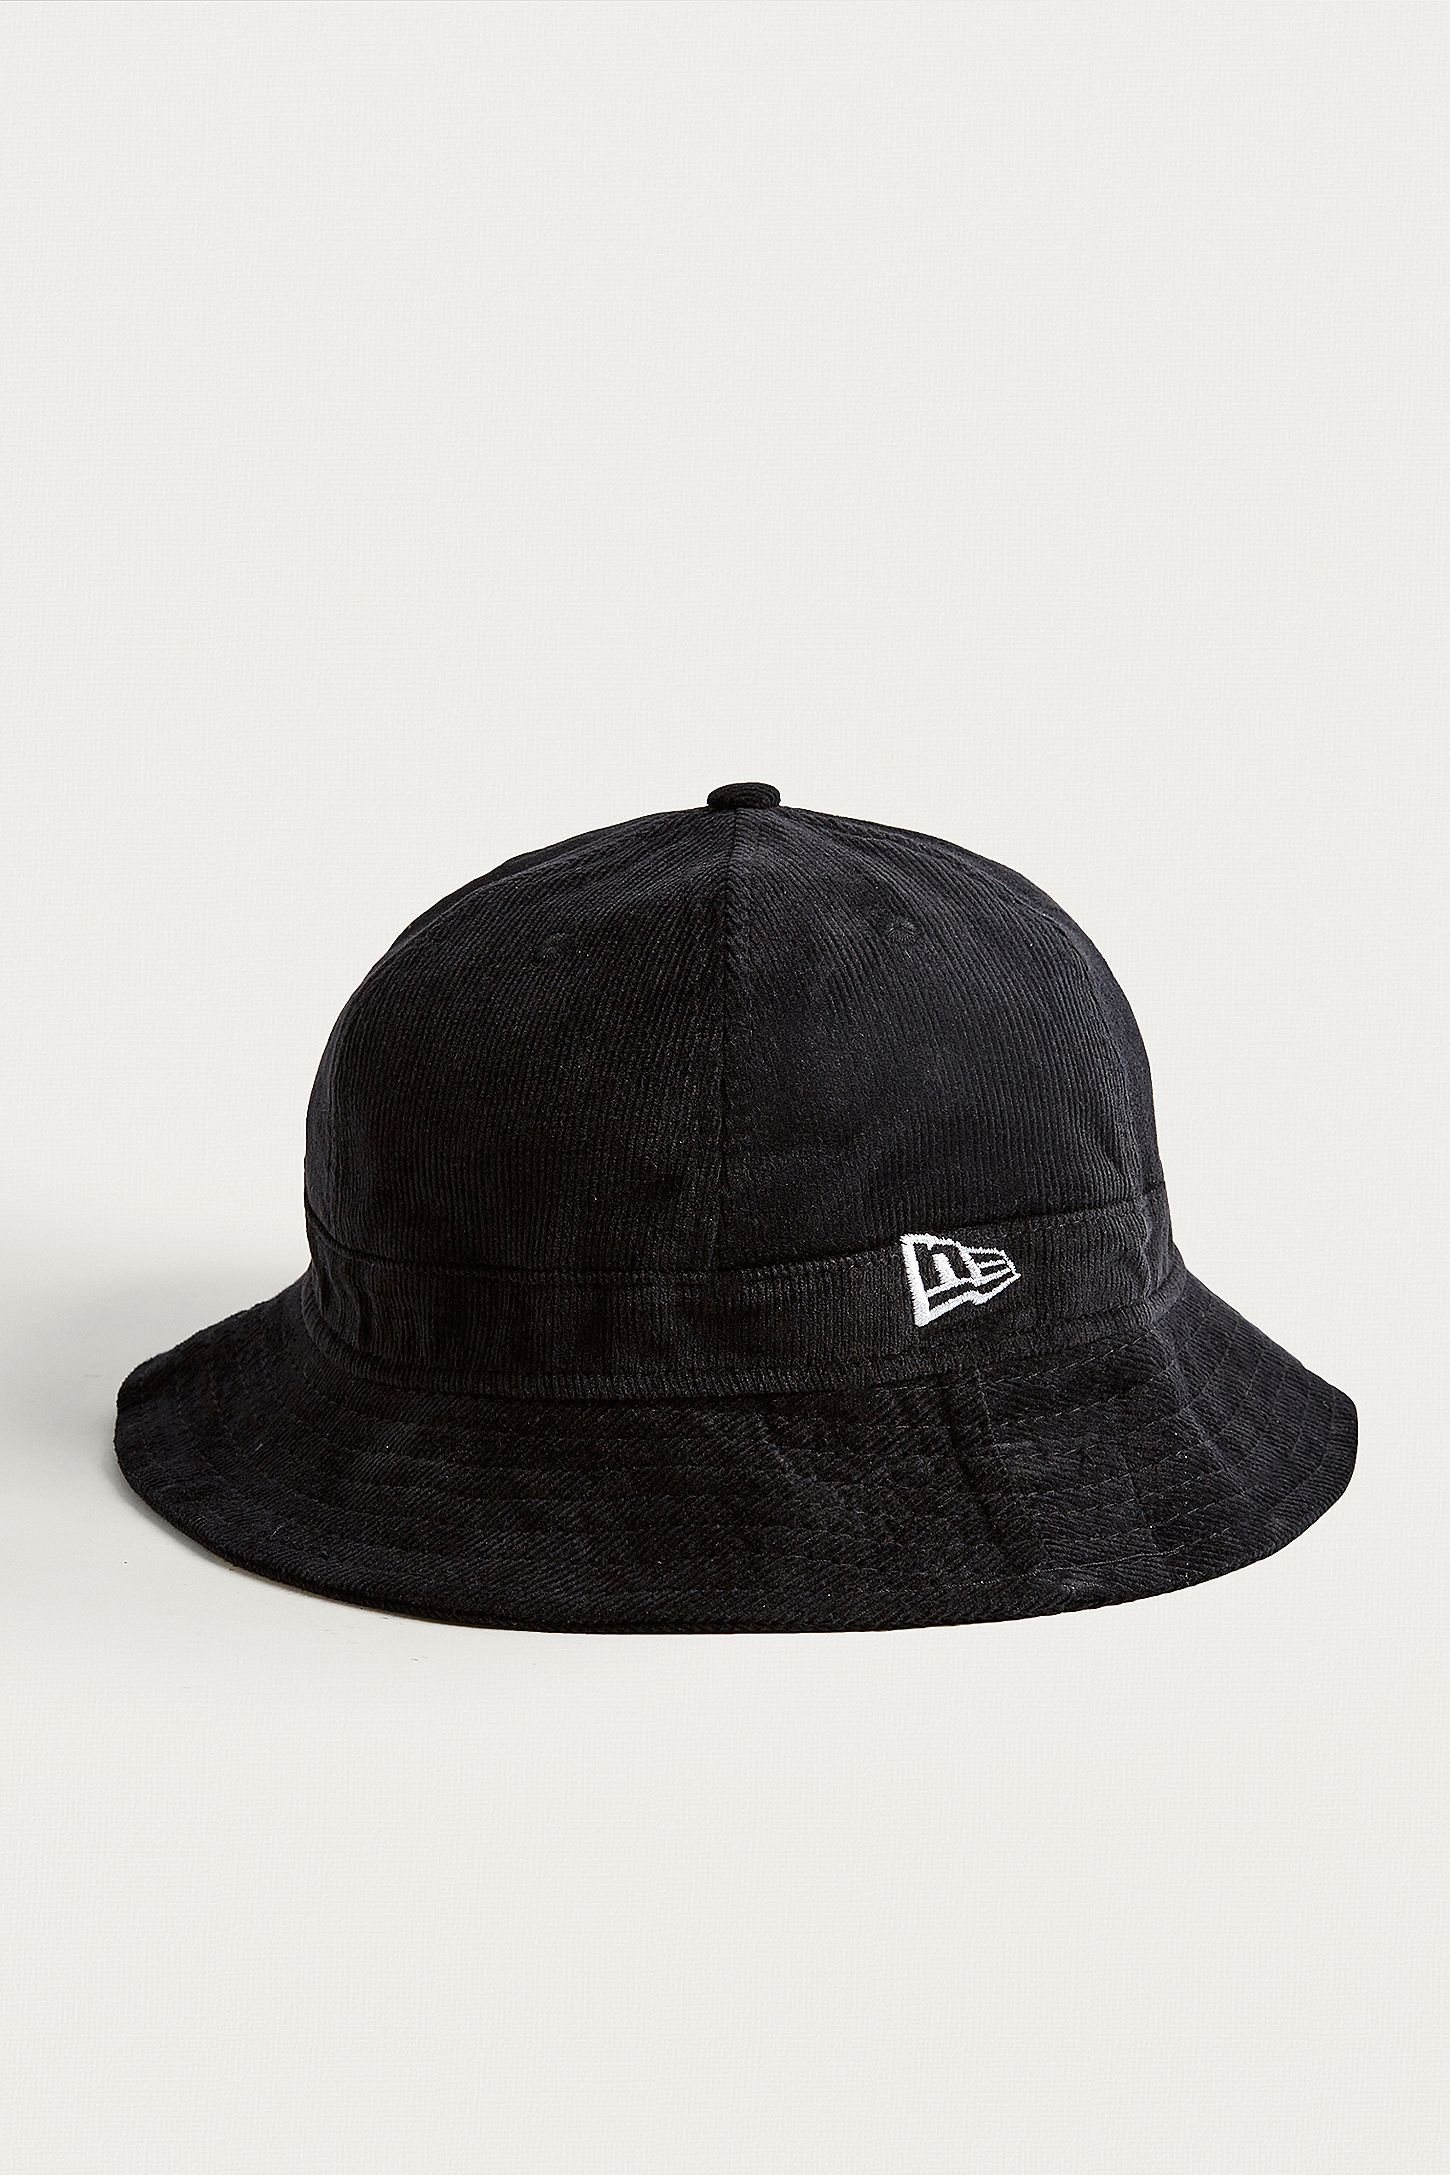 6a807786f0 New Era Corduroy Black Bucket Hat